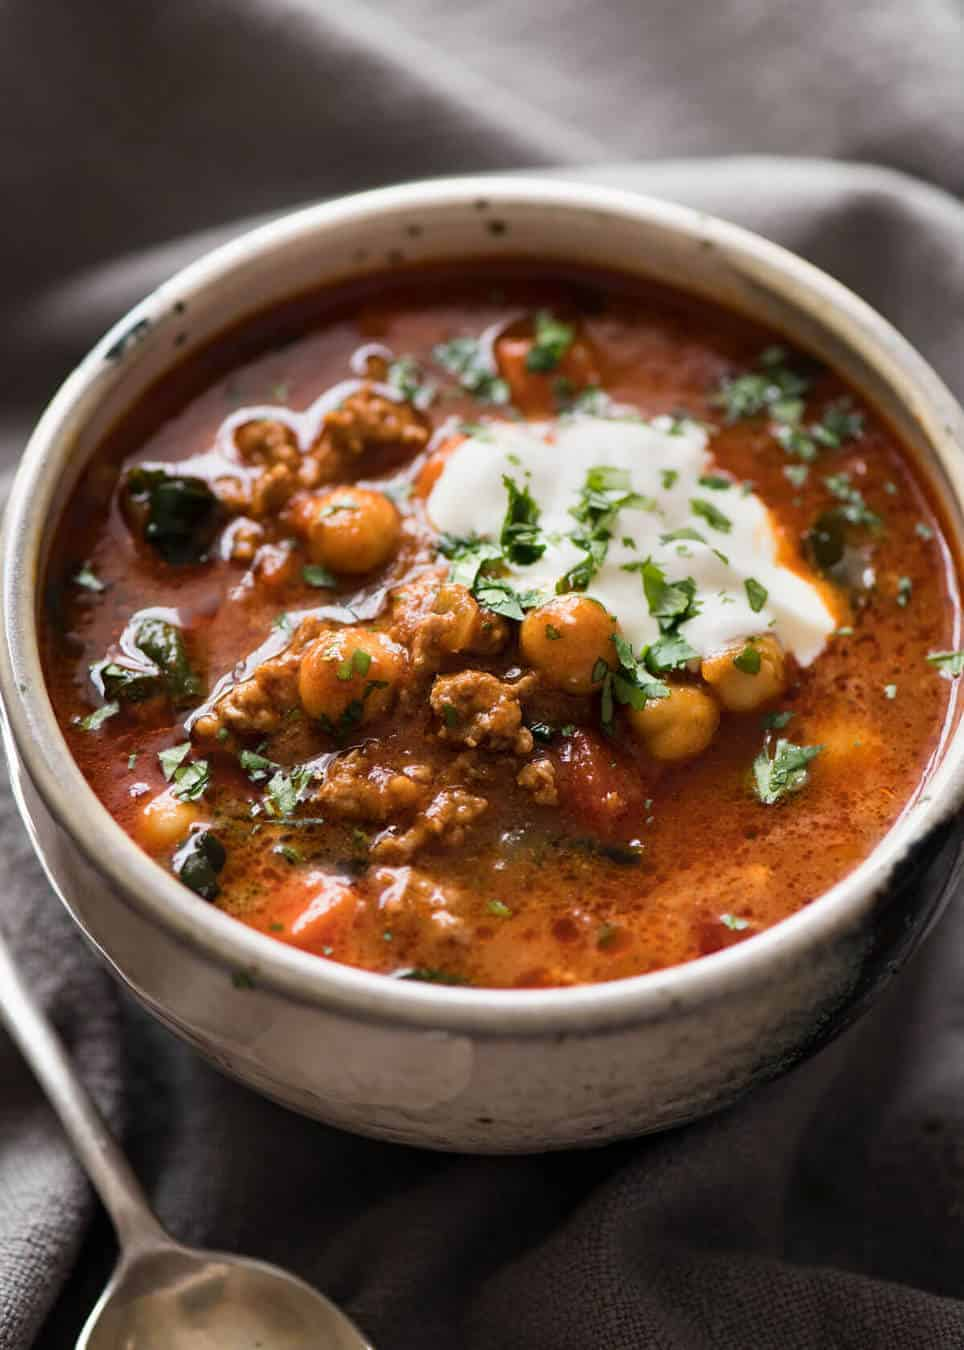 A chickpea soup exploding with flavour! Tastes like Chicken Shawarma in soup form with lamb, quick to make, nutritious and filling. recipetineats.com